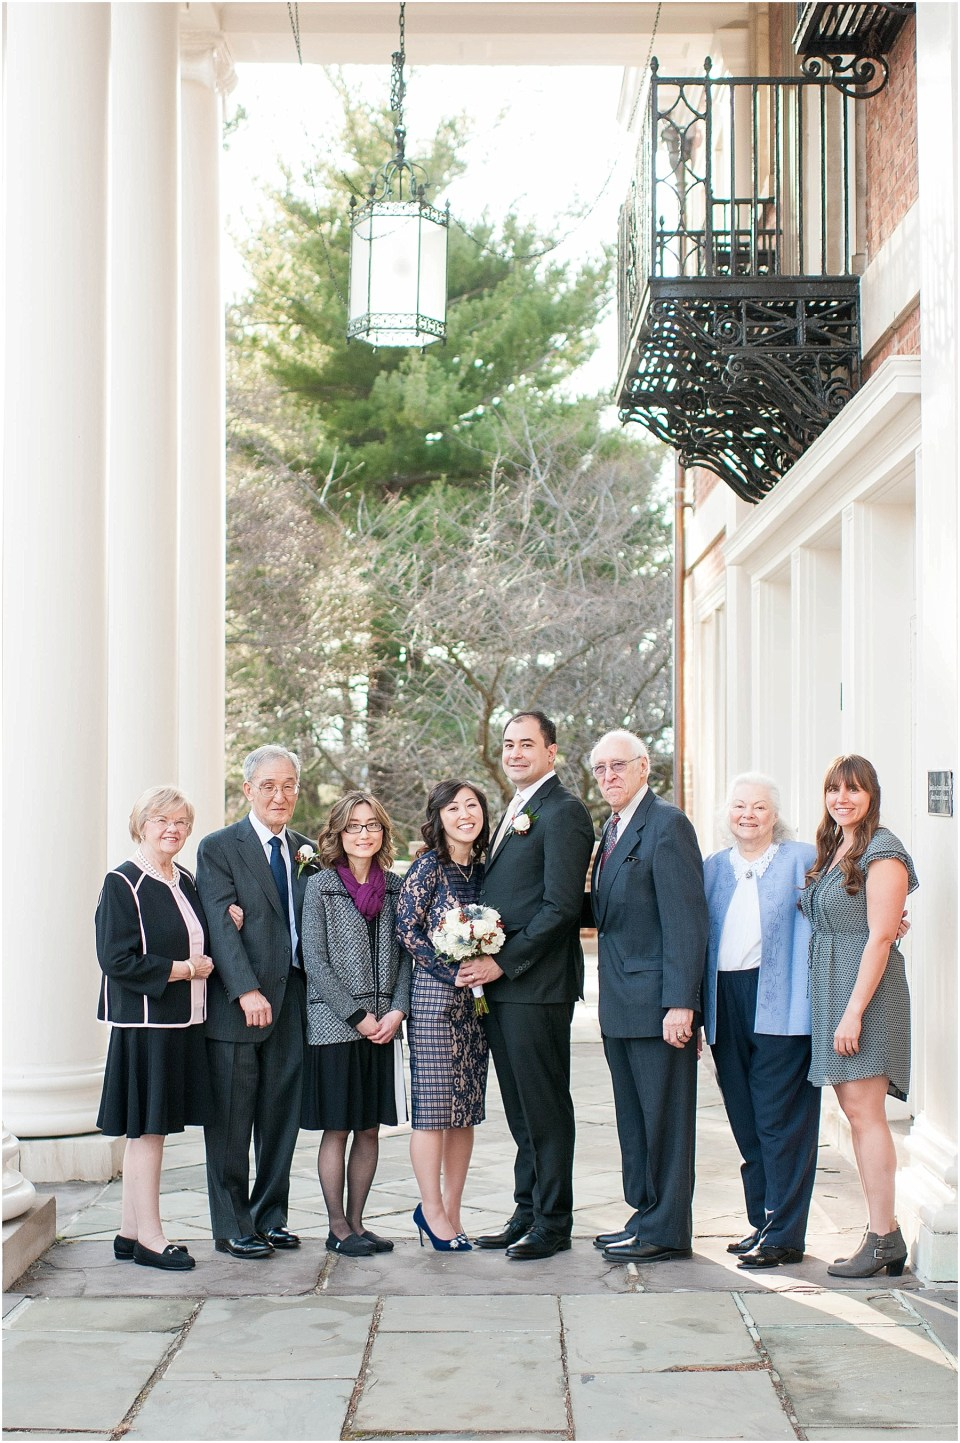 Small intimate wedding at Mansion at Strathmore | Ana Isabel Photography 32